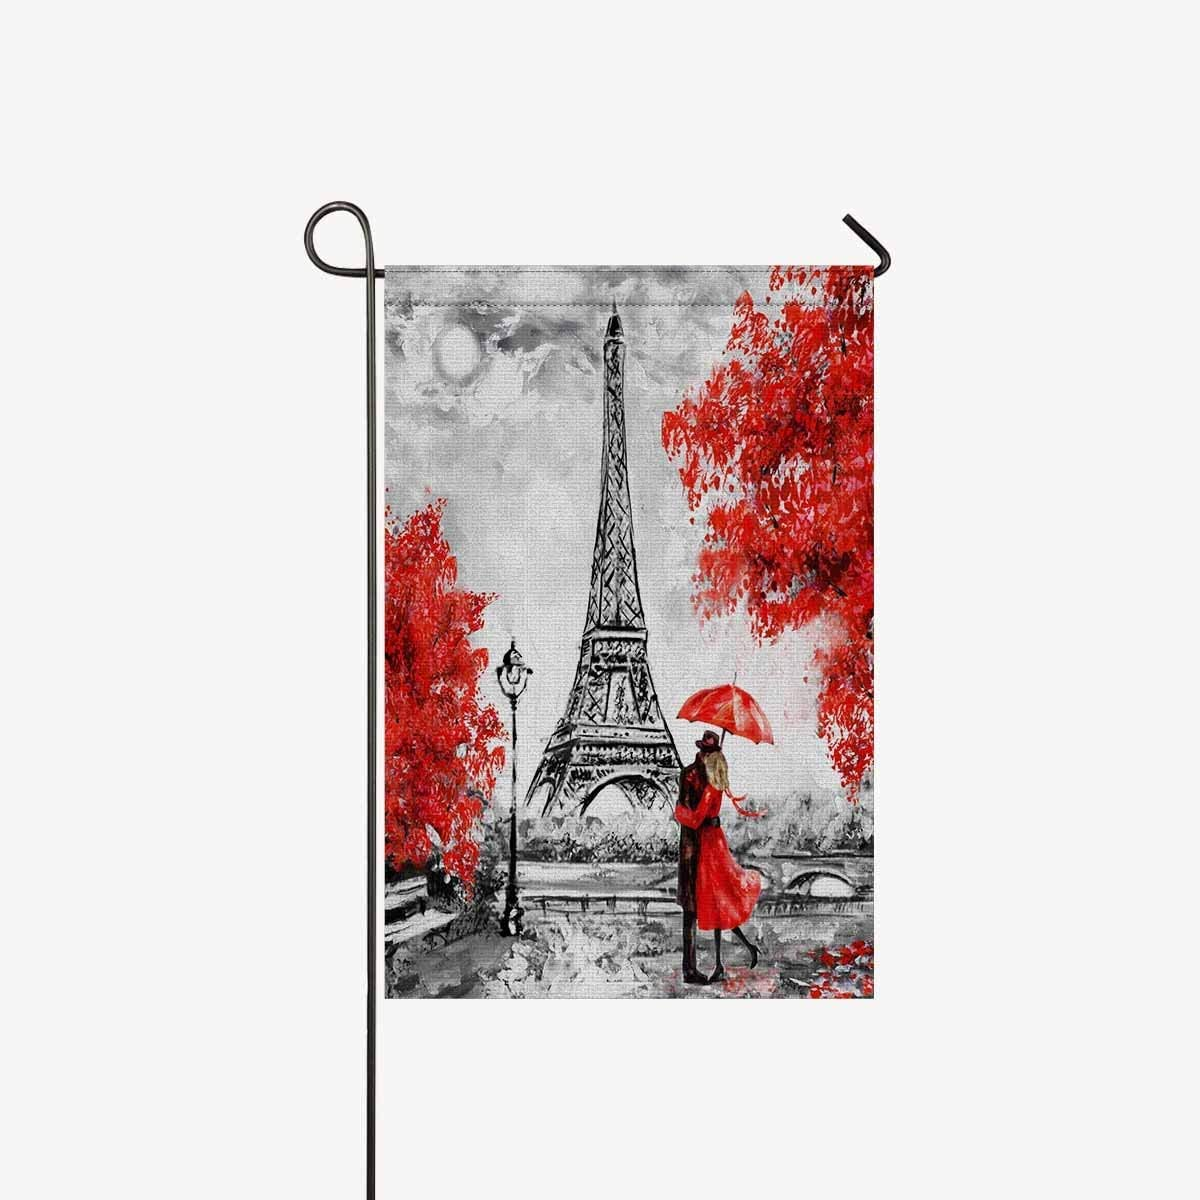 """TAOGAN Elegant Paris Eiffel Tower Couple Red Umbrella Trees Double-Sided Garden Flags House Banner Decorative Flags Home Outdoor Valentine,Welcome Holiday Yard Flags 12"""" x 18"""" (Without Flagpole)"""